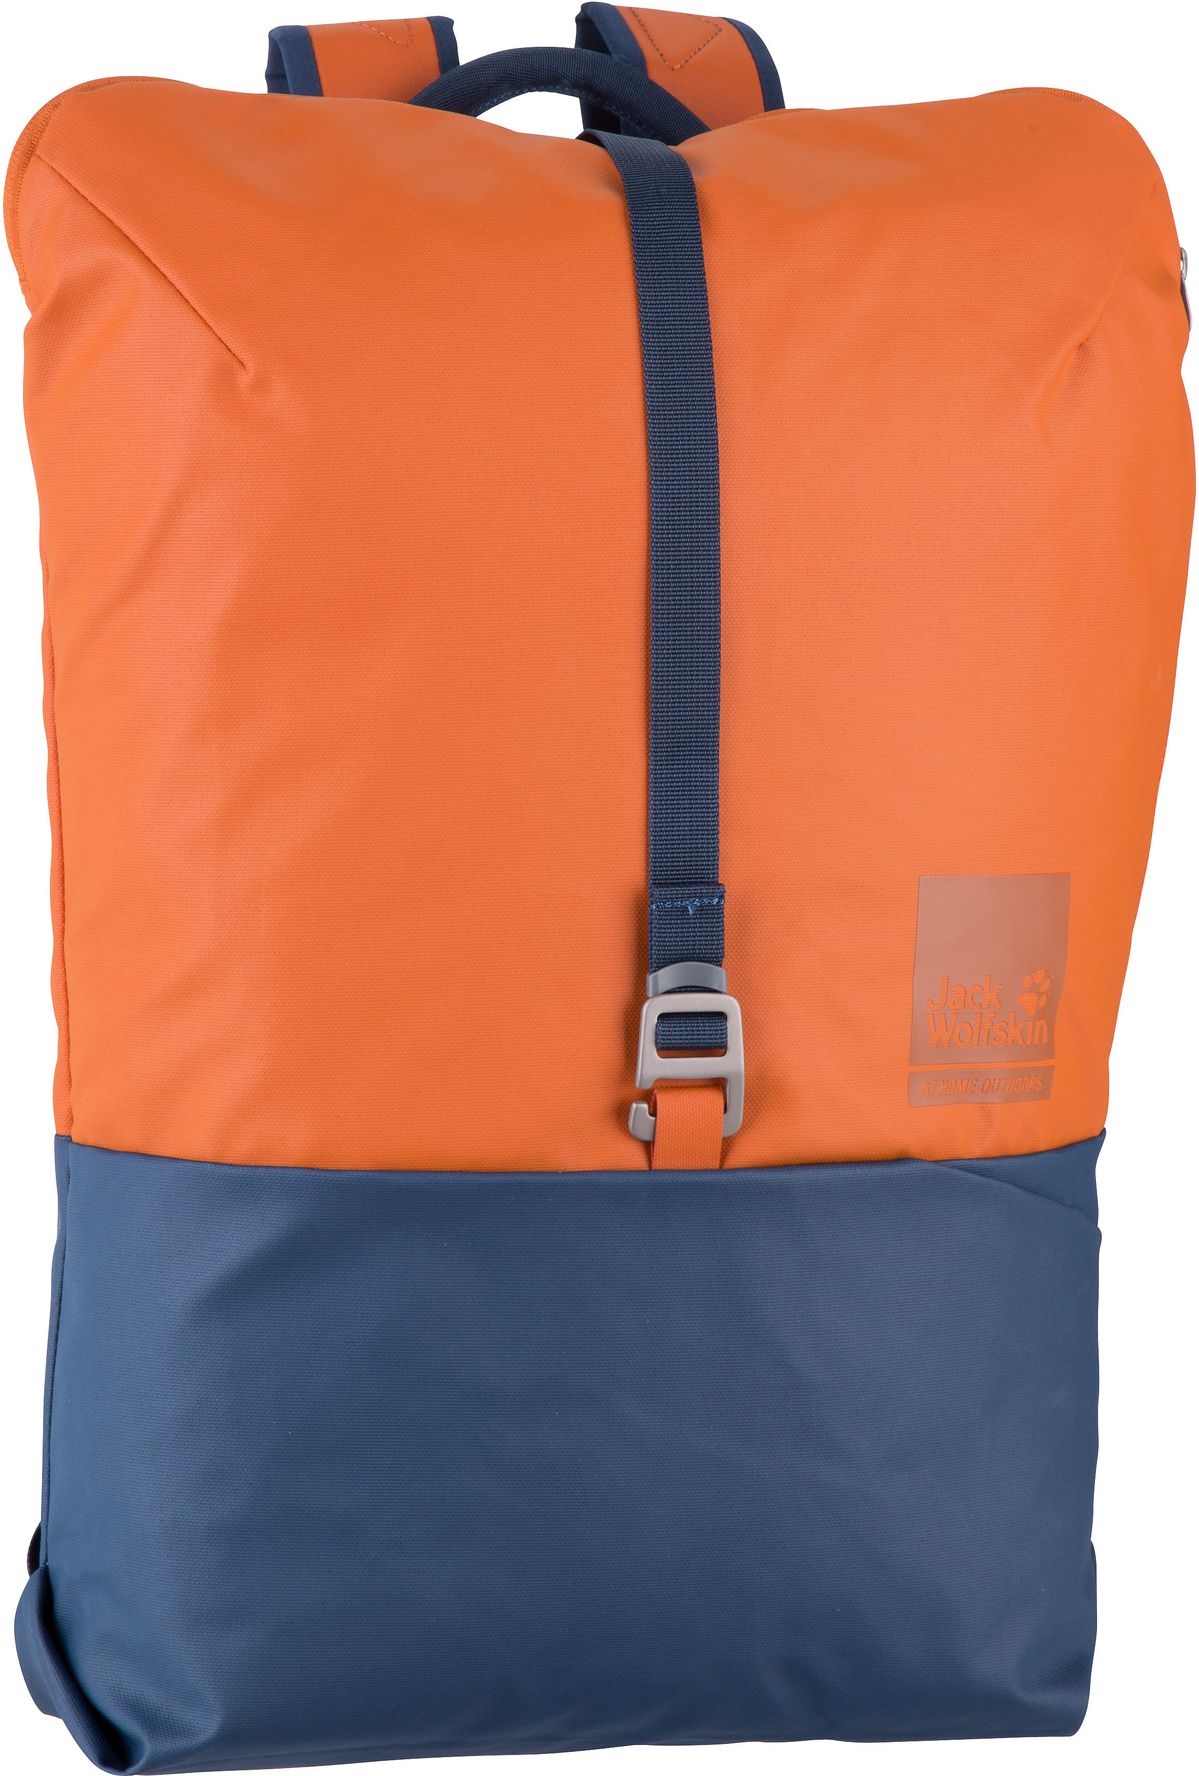 Rucksack / Daypack 365 OnTheMove 24 Pack Desert Orange (24 Liter)